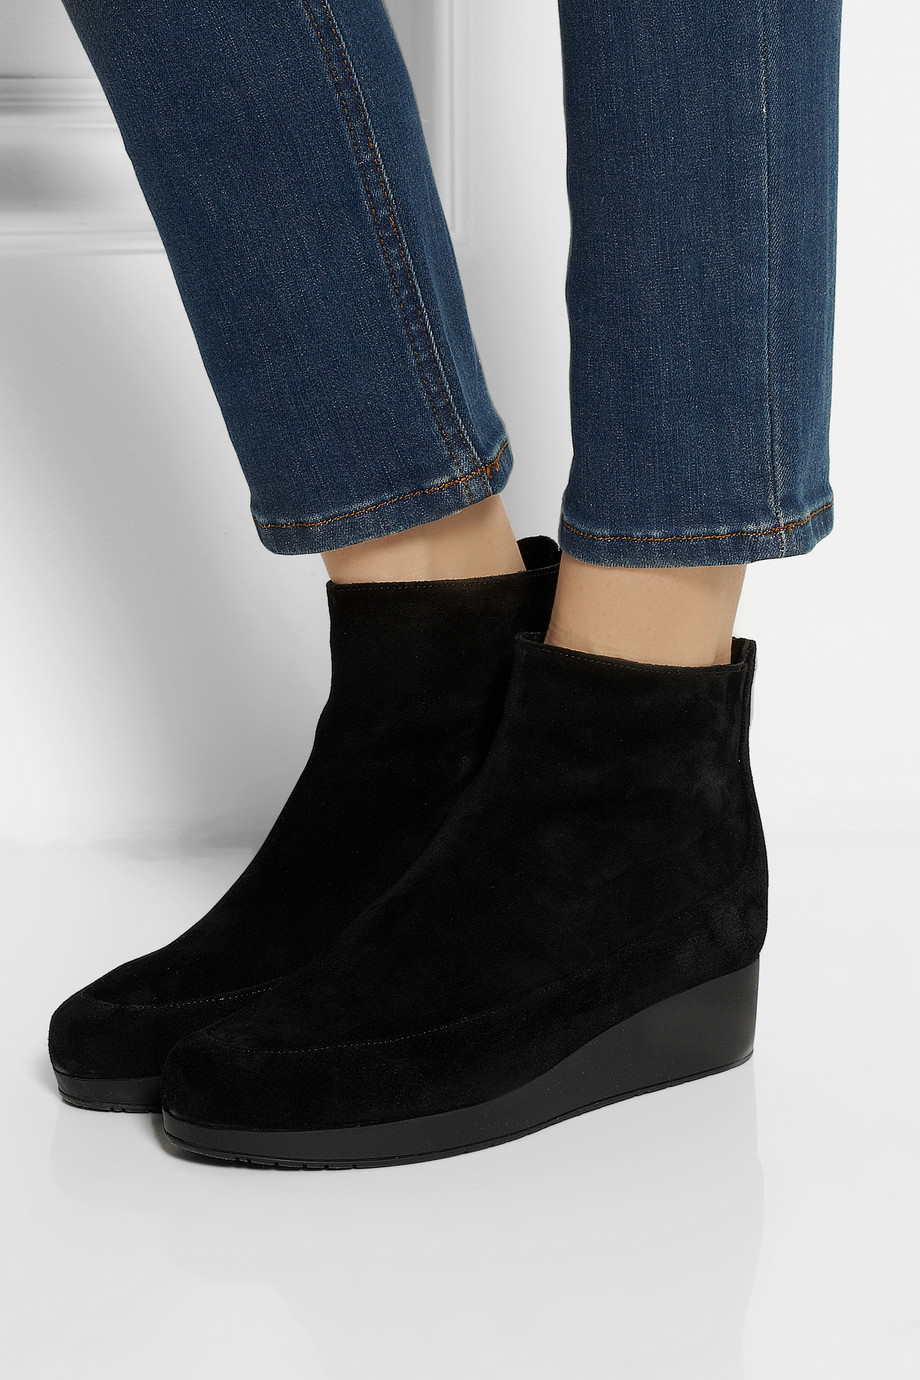 Robert Clergerie Nagil Suede Wedge Ankle Boots In Black Lyst